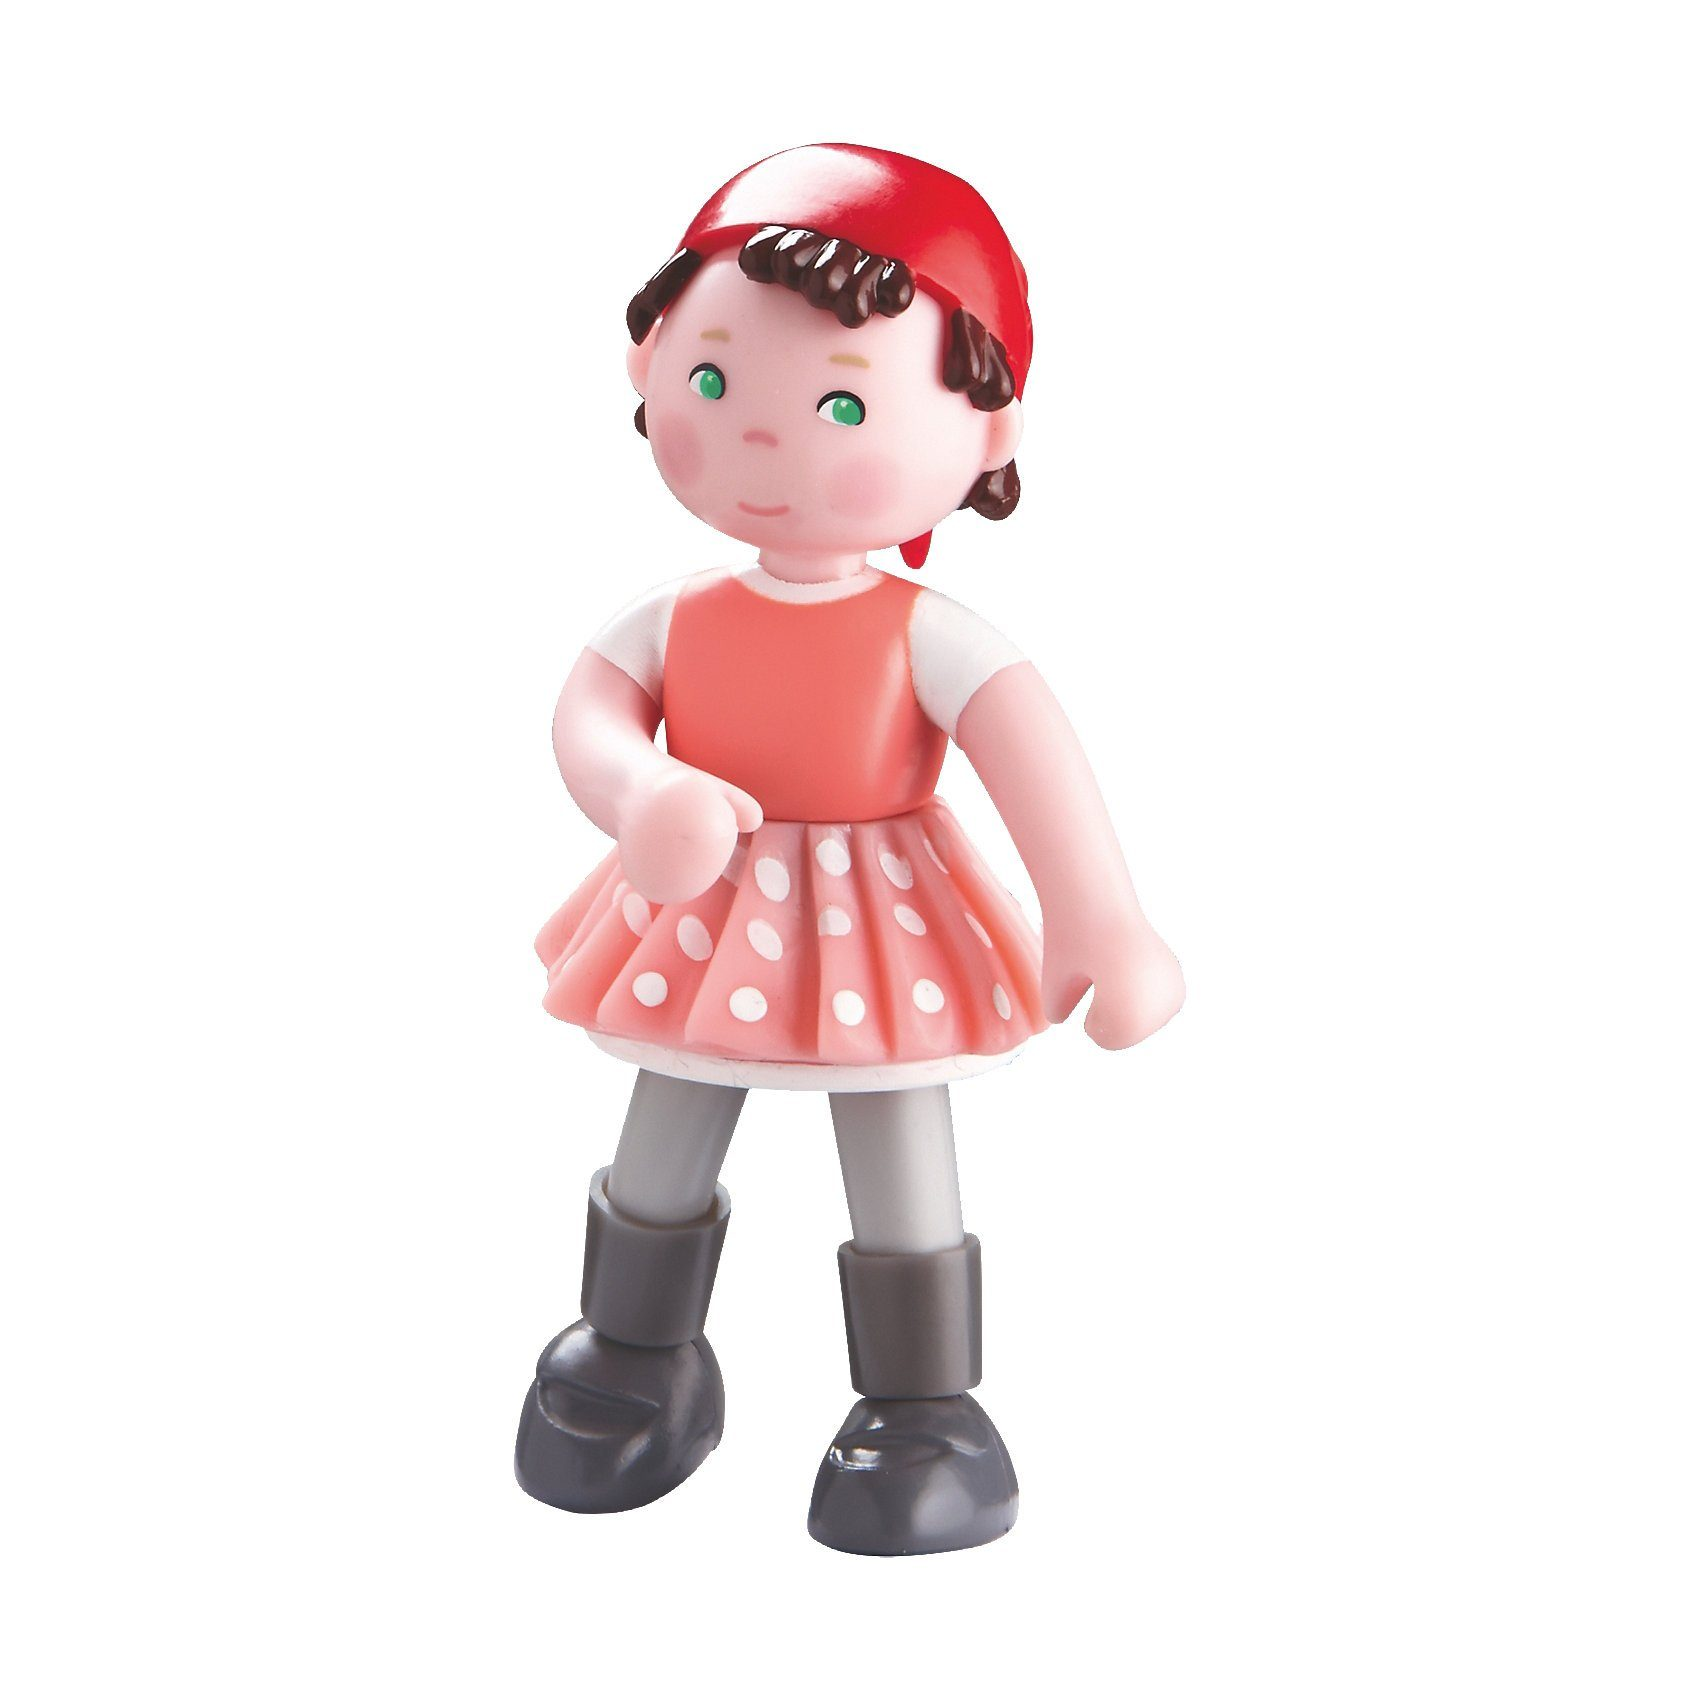 Haba 301970 Little Friends Puppe Lisbeth